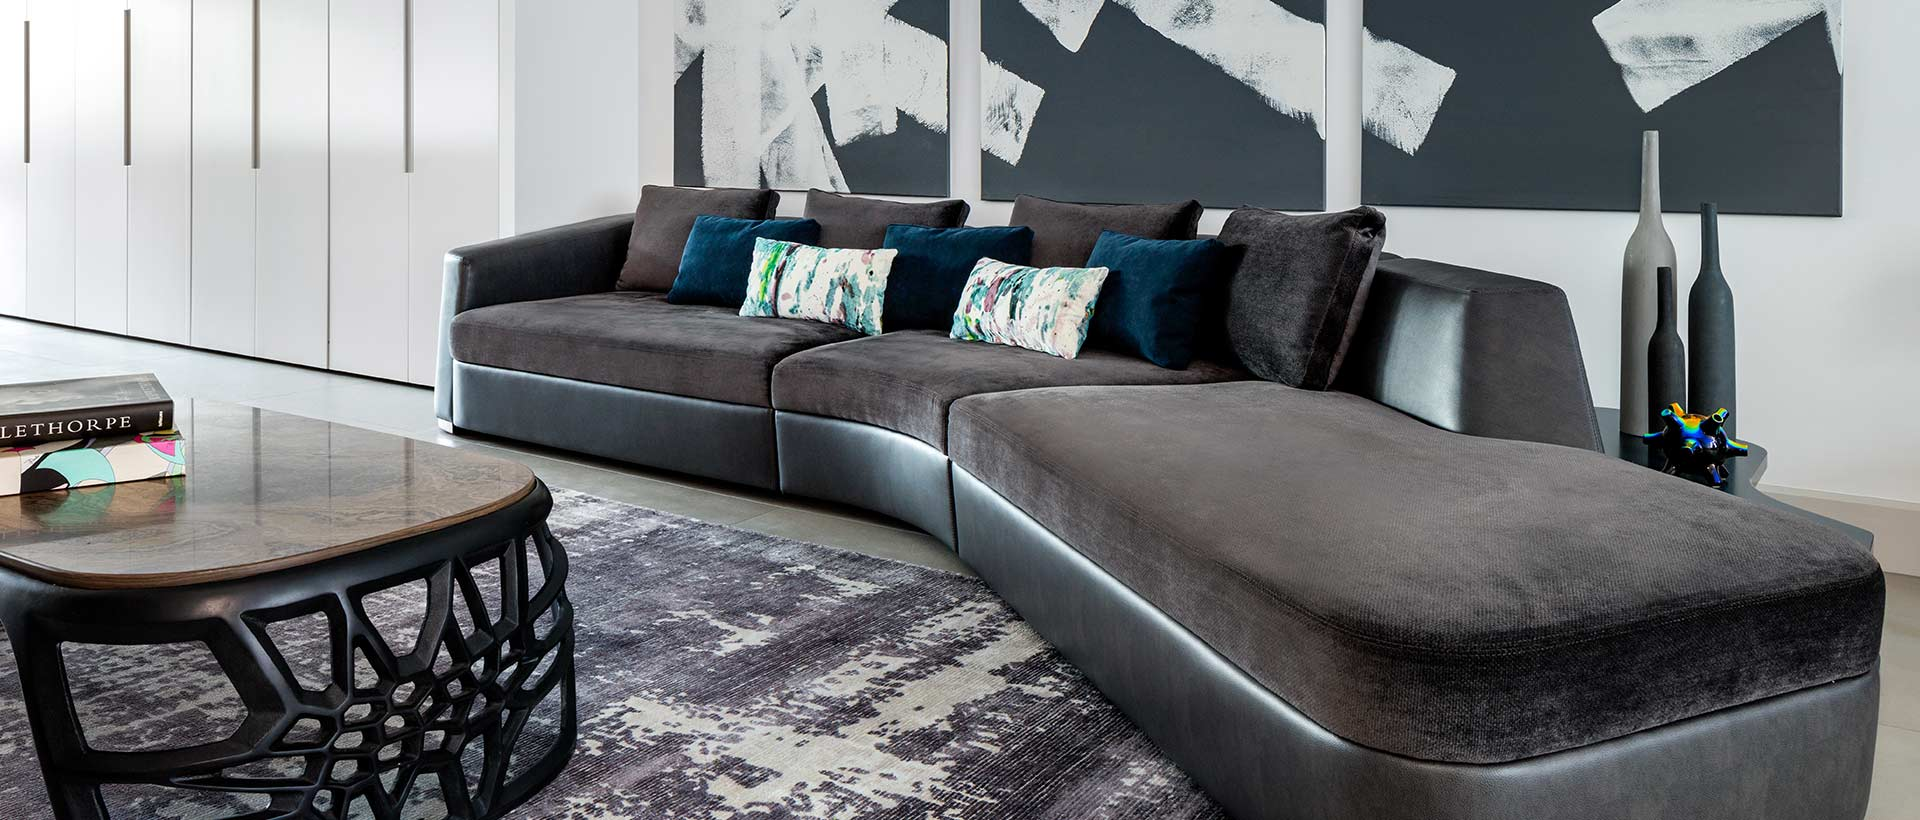 Atelier Purcell Luxury Furniture